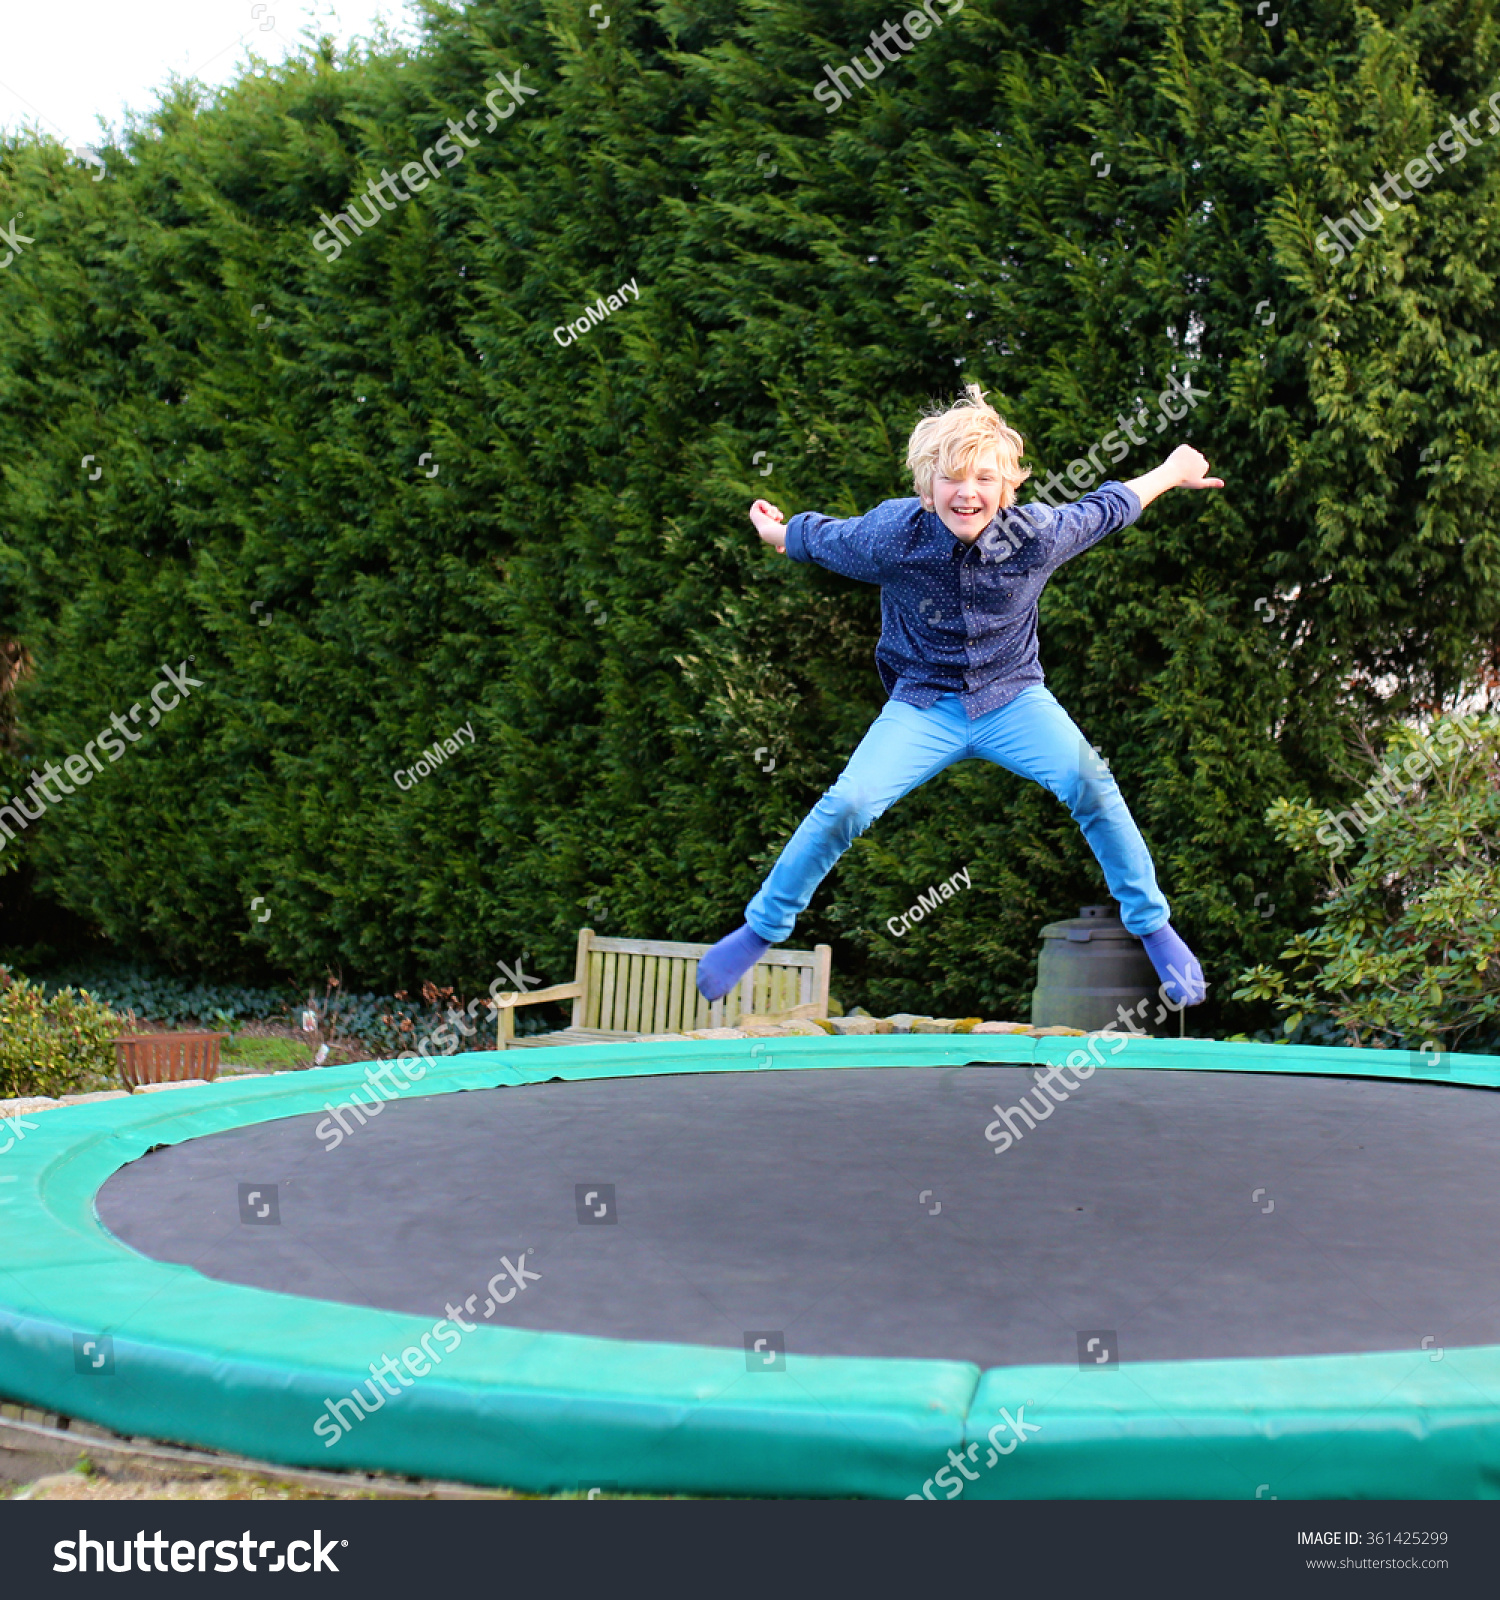 Springs Trampoline Park Waiver: Happy Kid Plays Outdoors Garden Jumping Stock Photo